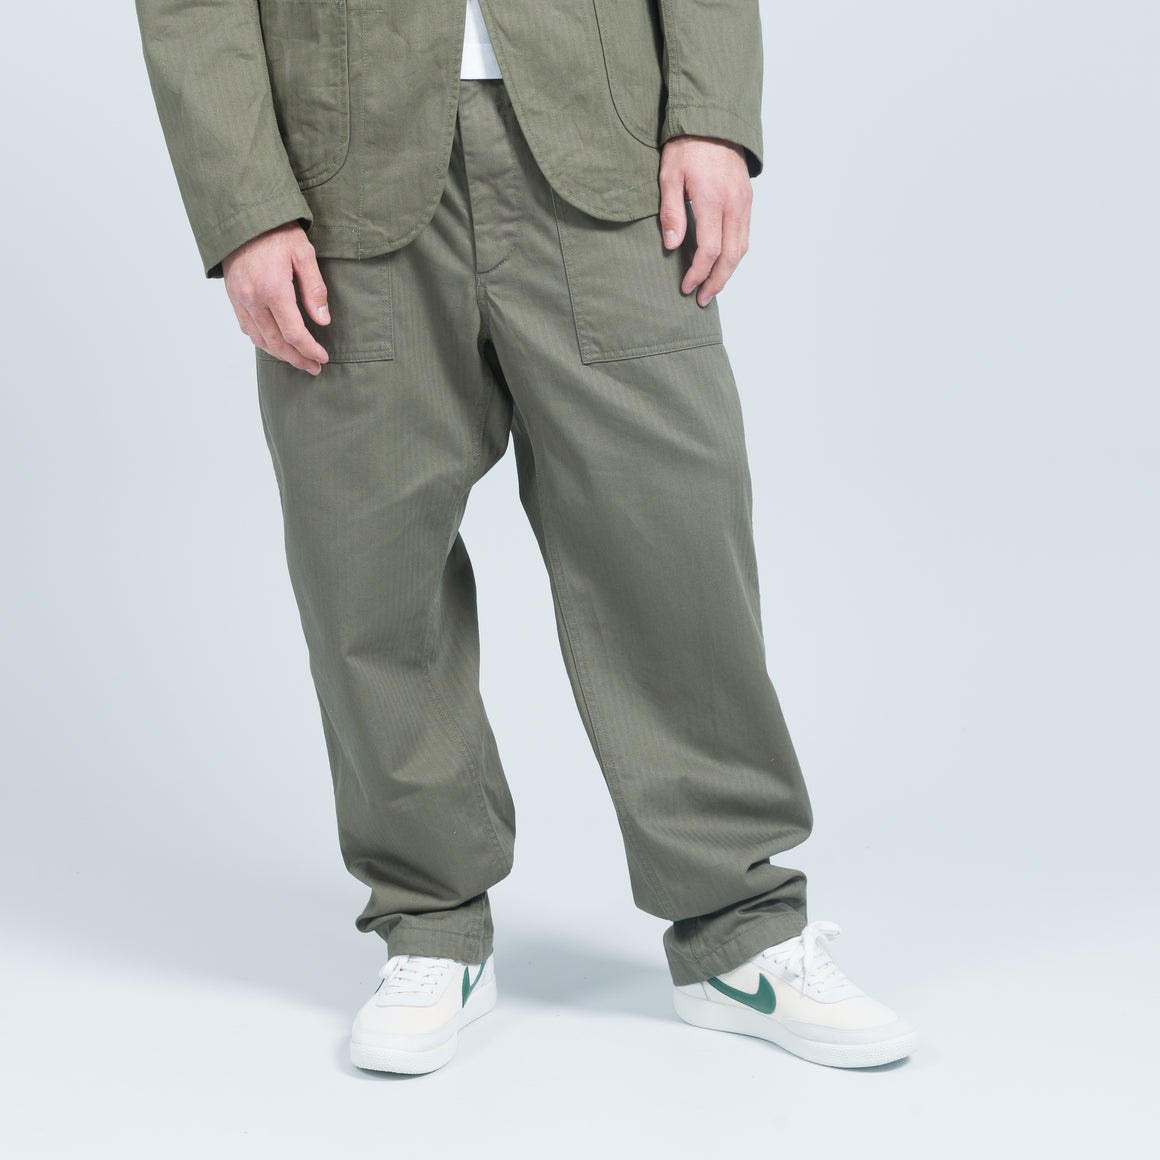 Engineered Garments - Fatigue Pant - Olive Cotton Herringbone Twill - Up There